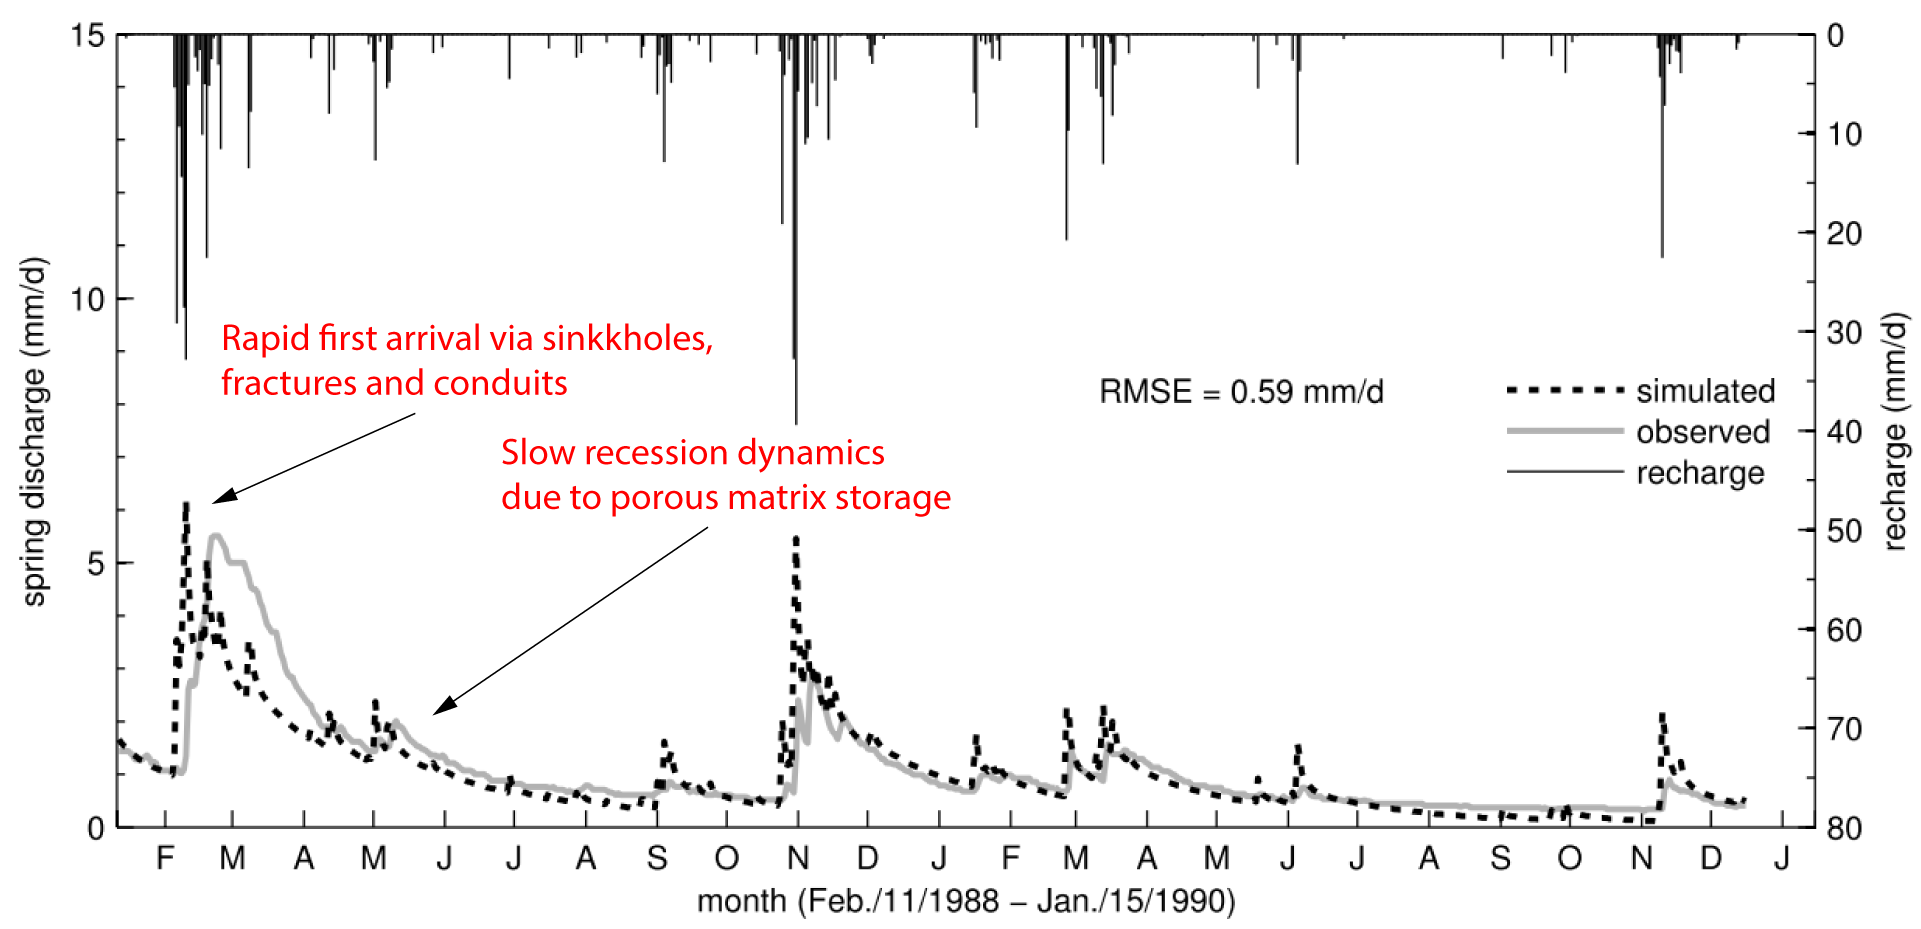 Typical dual-domain discharge behavior of a karst spring